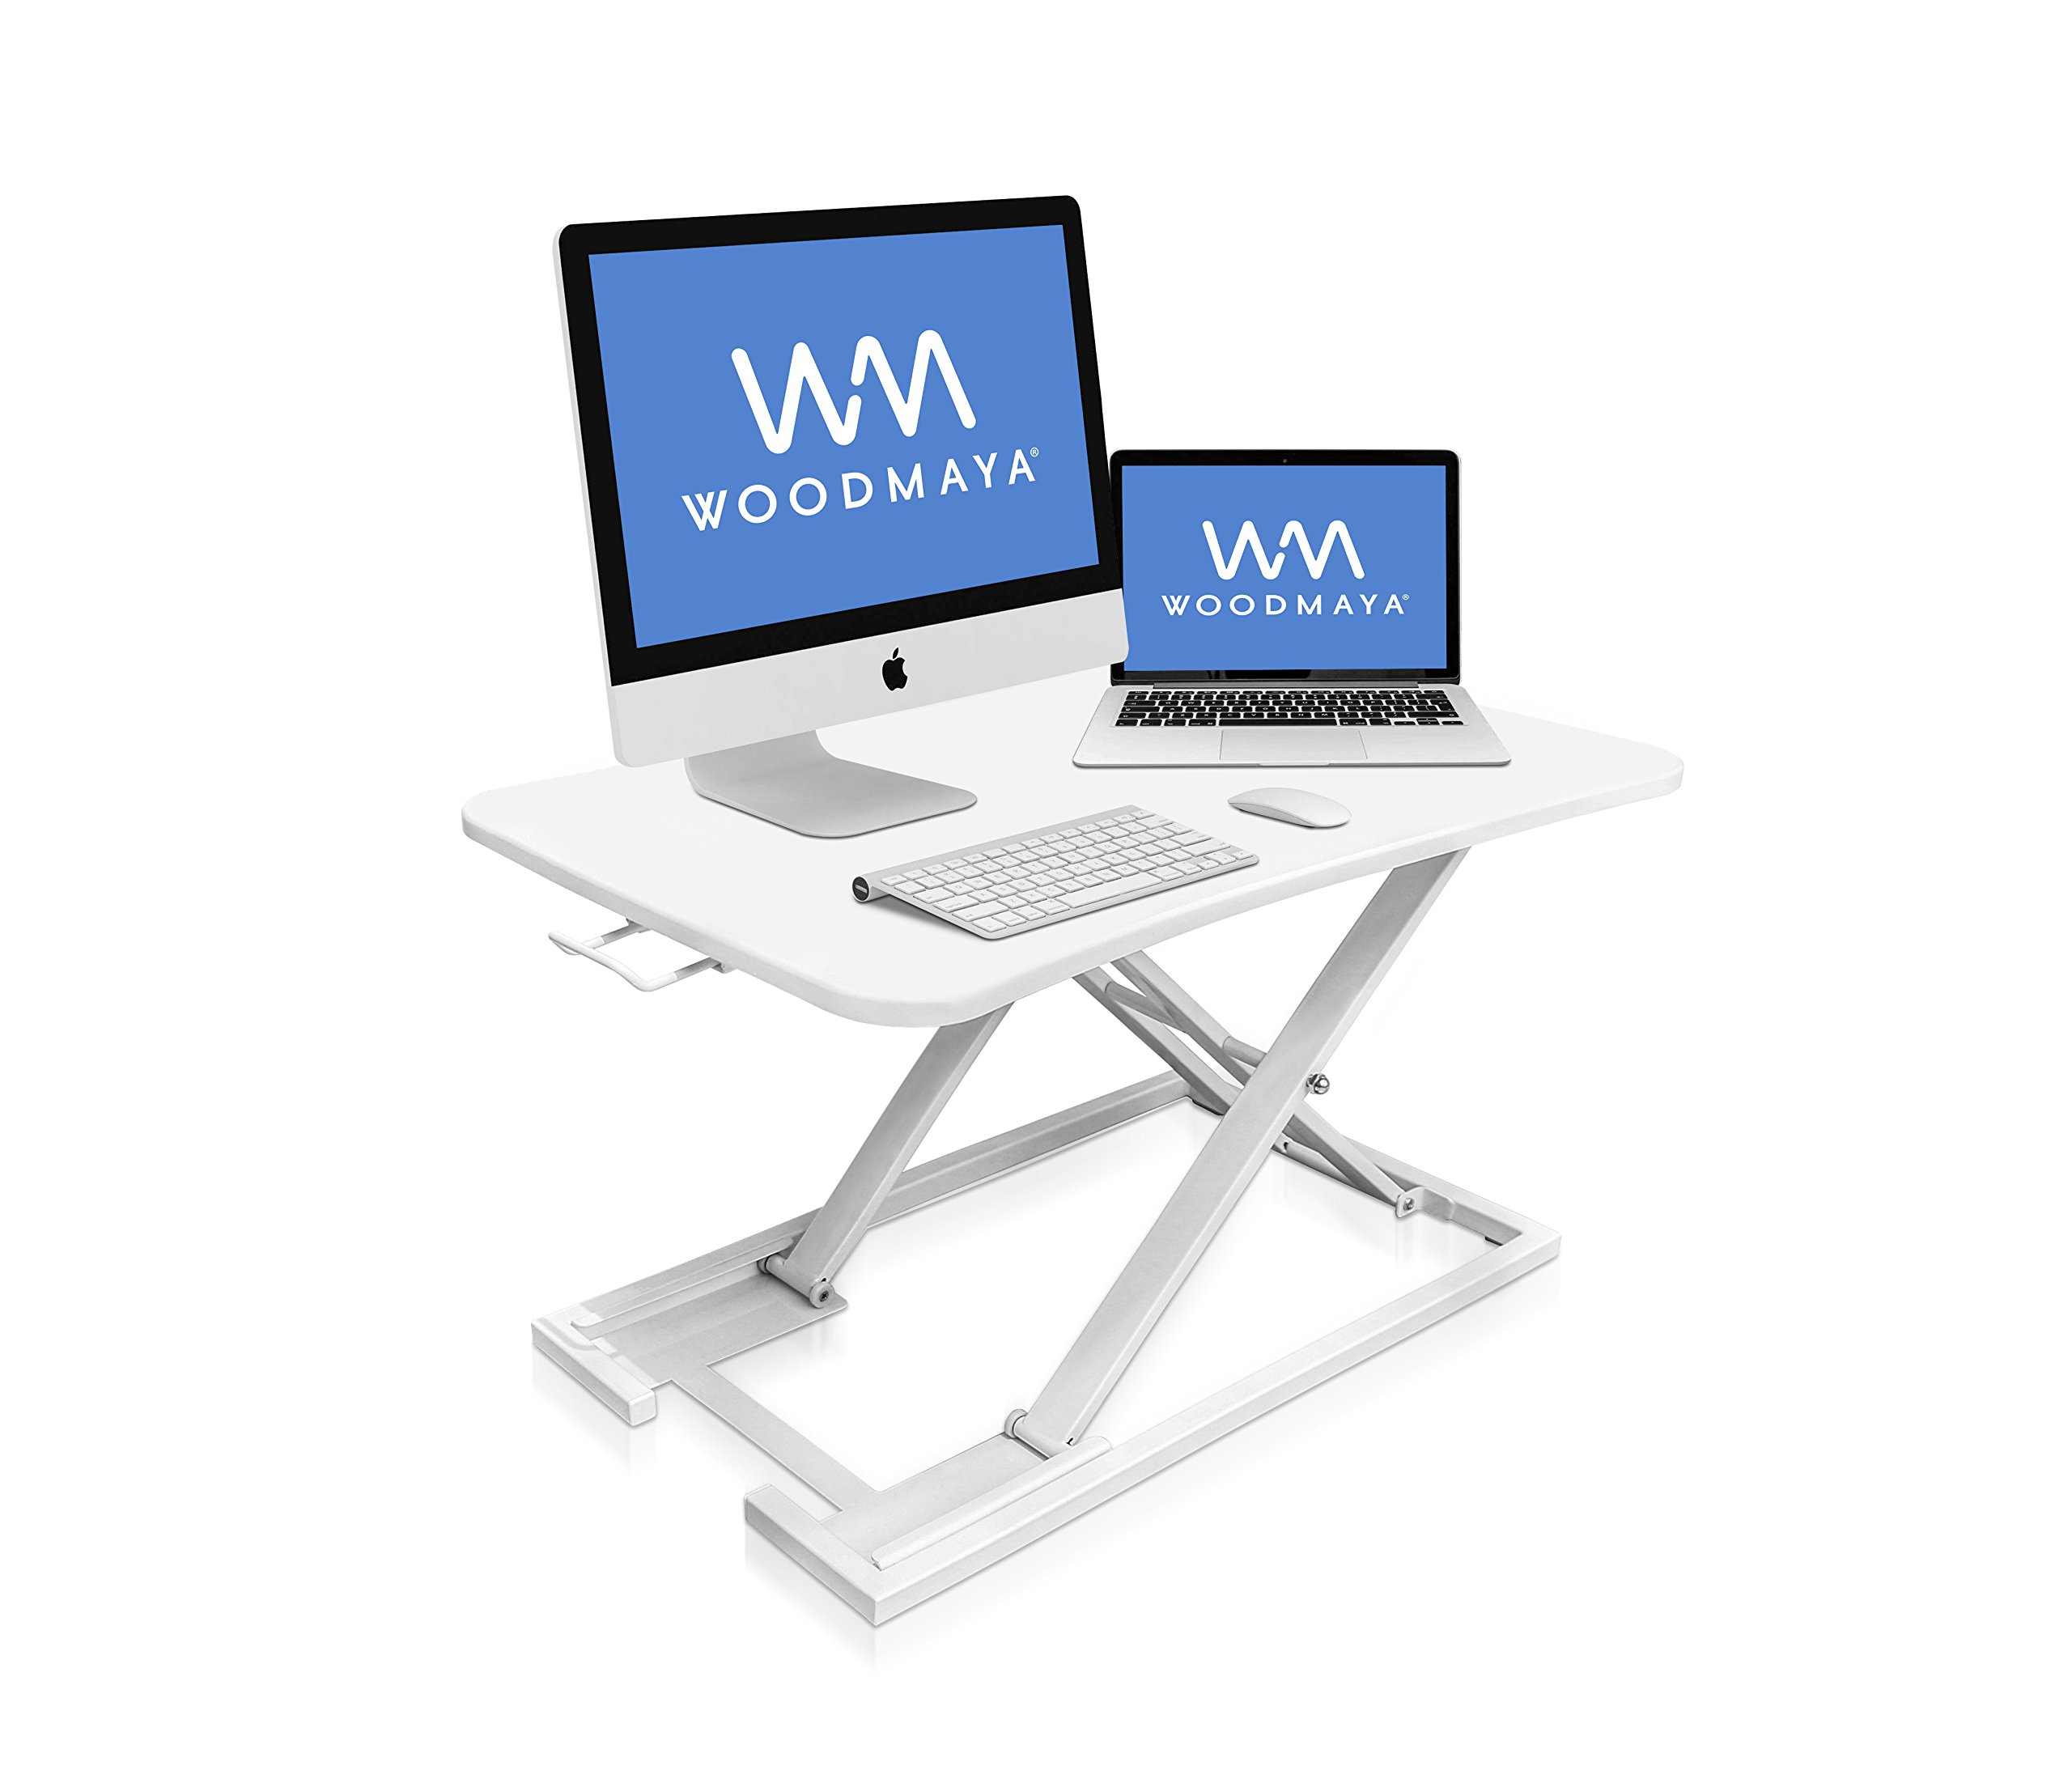 WOODMAYA Height Adjustable Standing Desk with Premium Air Pump Lift - Desk Stand Raiser - Instantly Convert to a Sit to Stand Desk 29''x19''(White)